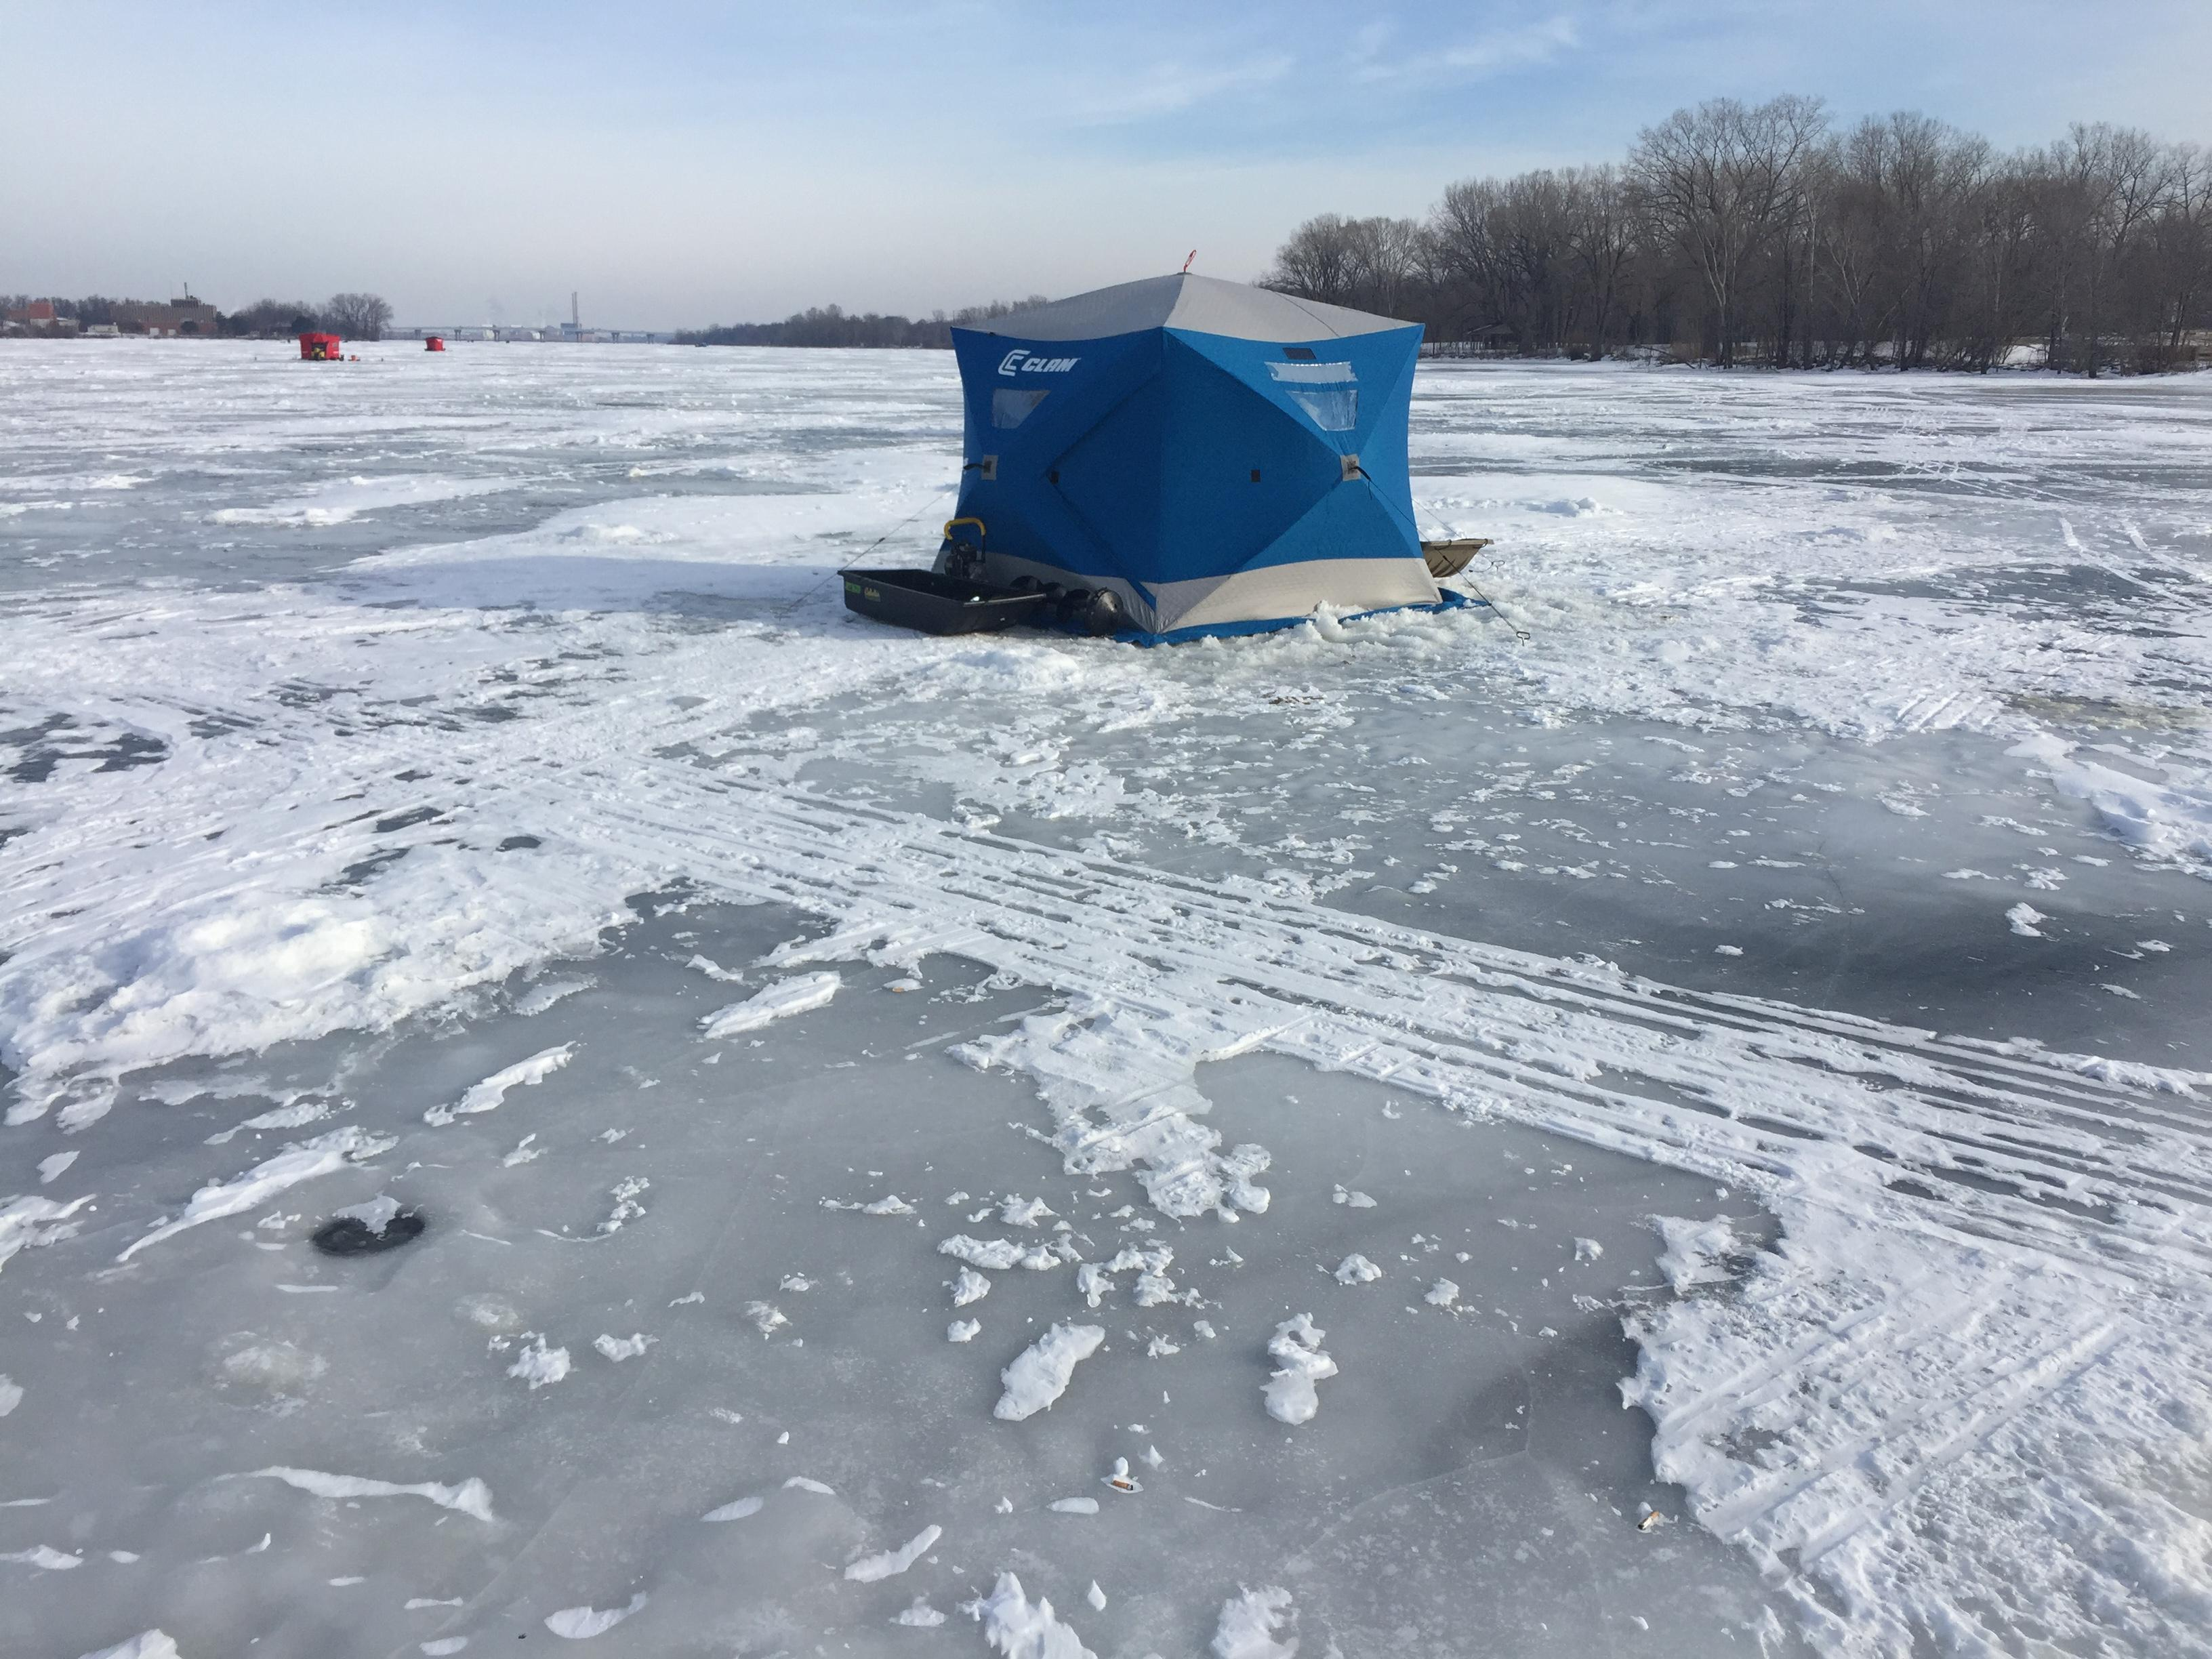 Portable ice fishing shelter on Fox River in De Pere, January 19, 2018 (WLUK/Eric Peterson)